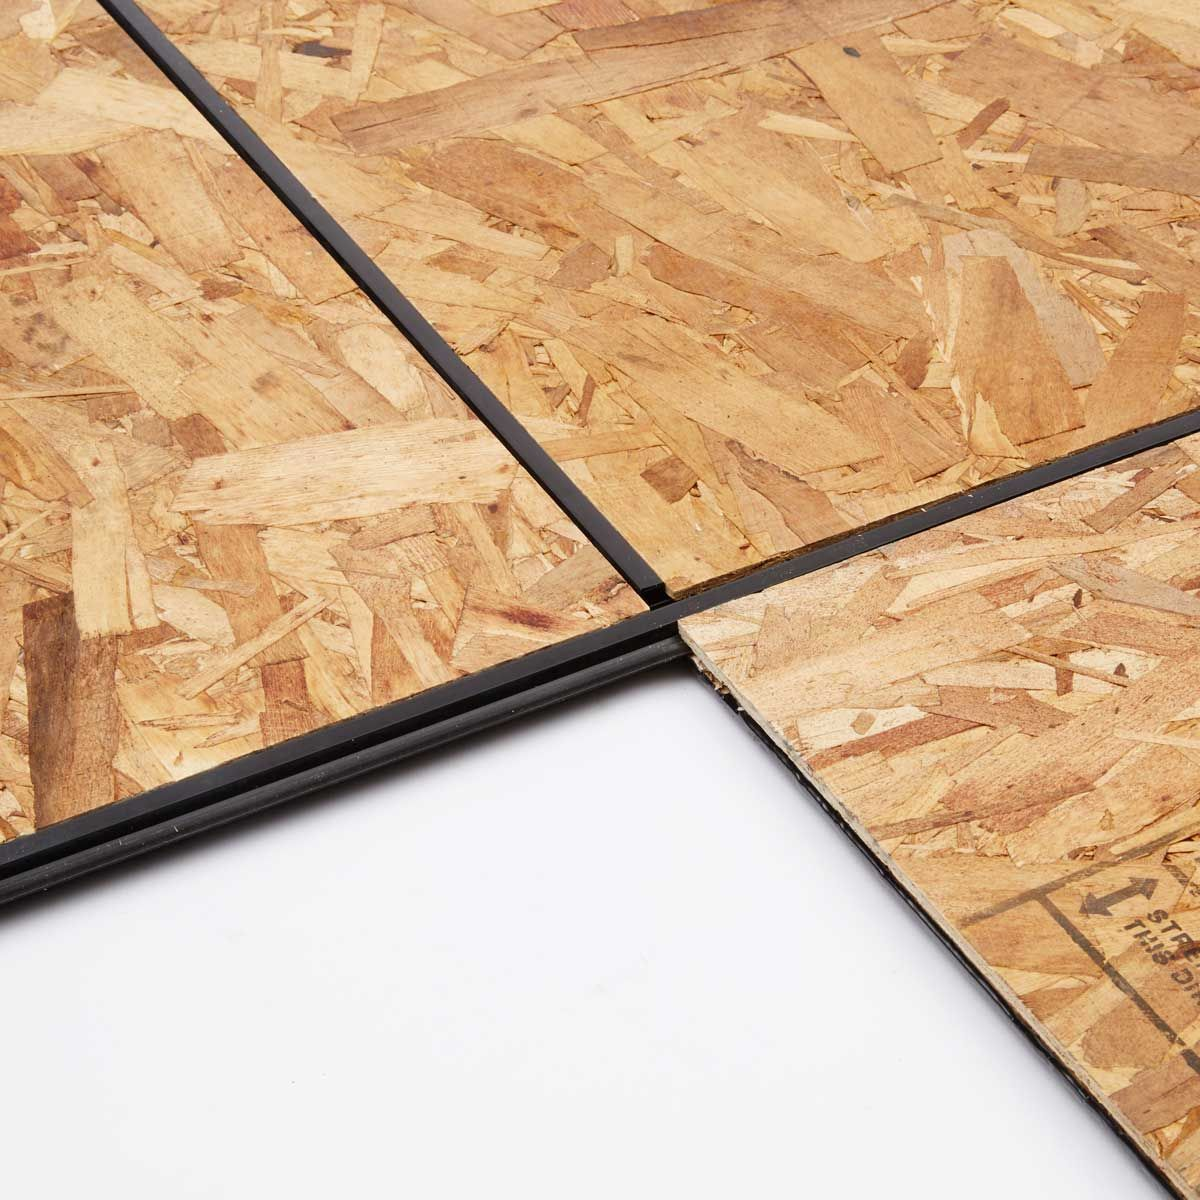 install a warm, moisture-resistant basement subfloor in a